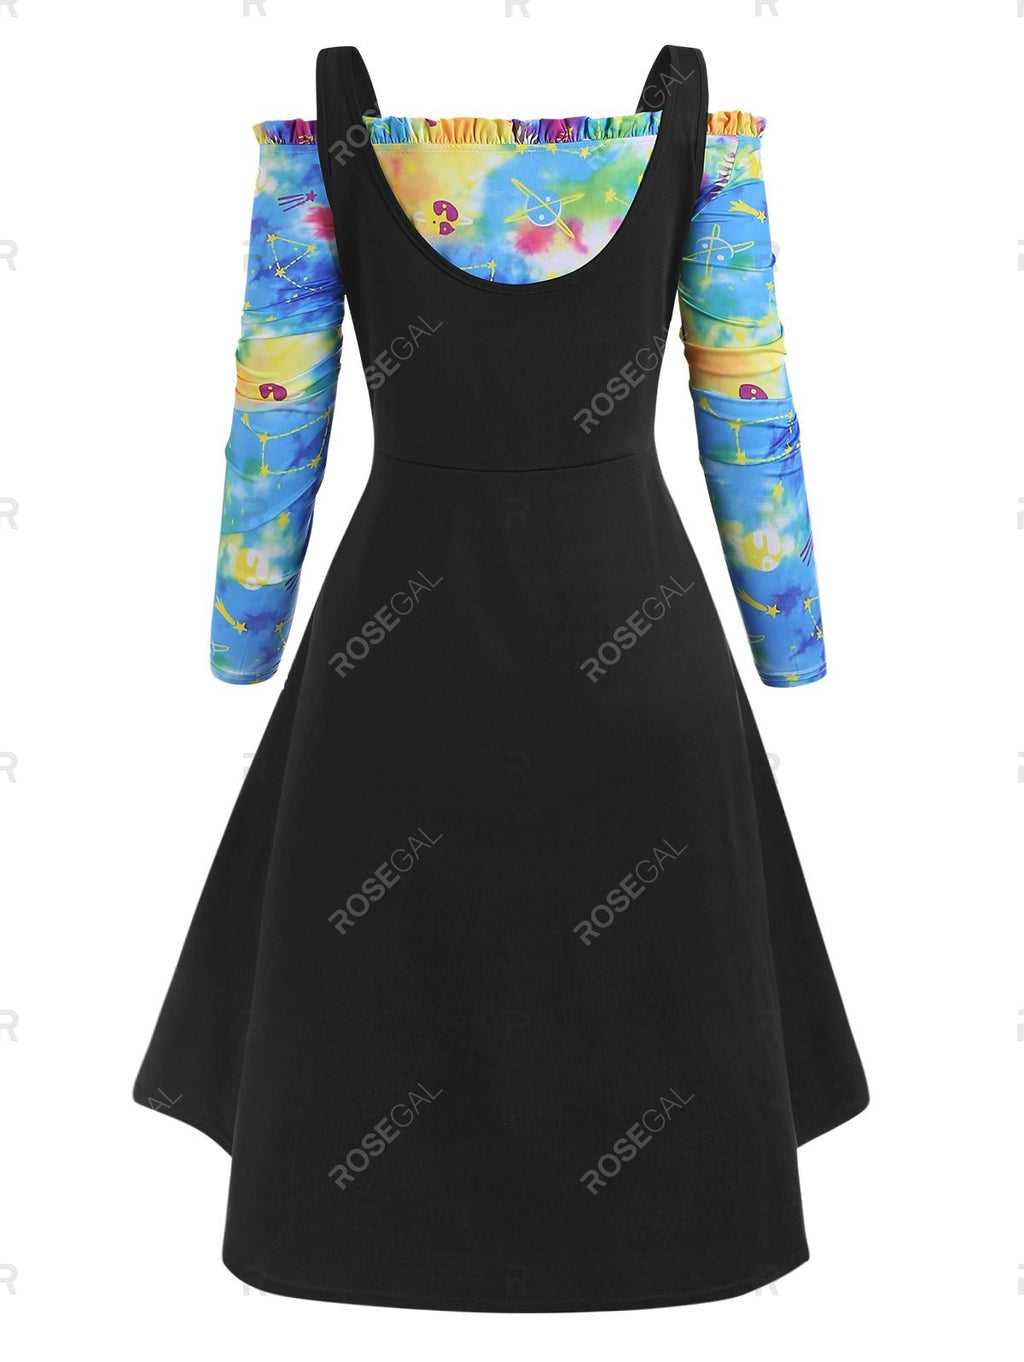 Plus Size High Low Tank Top and Galaxy Tie Dye Off Shoulder Dress